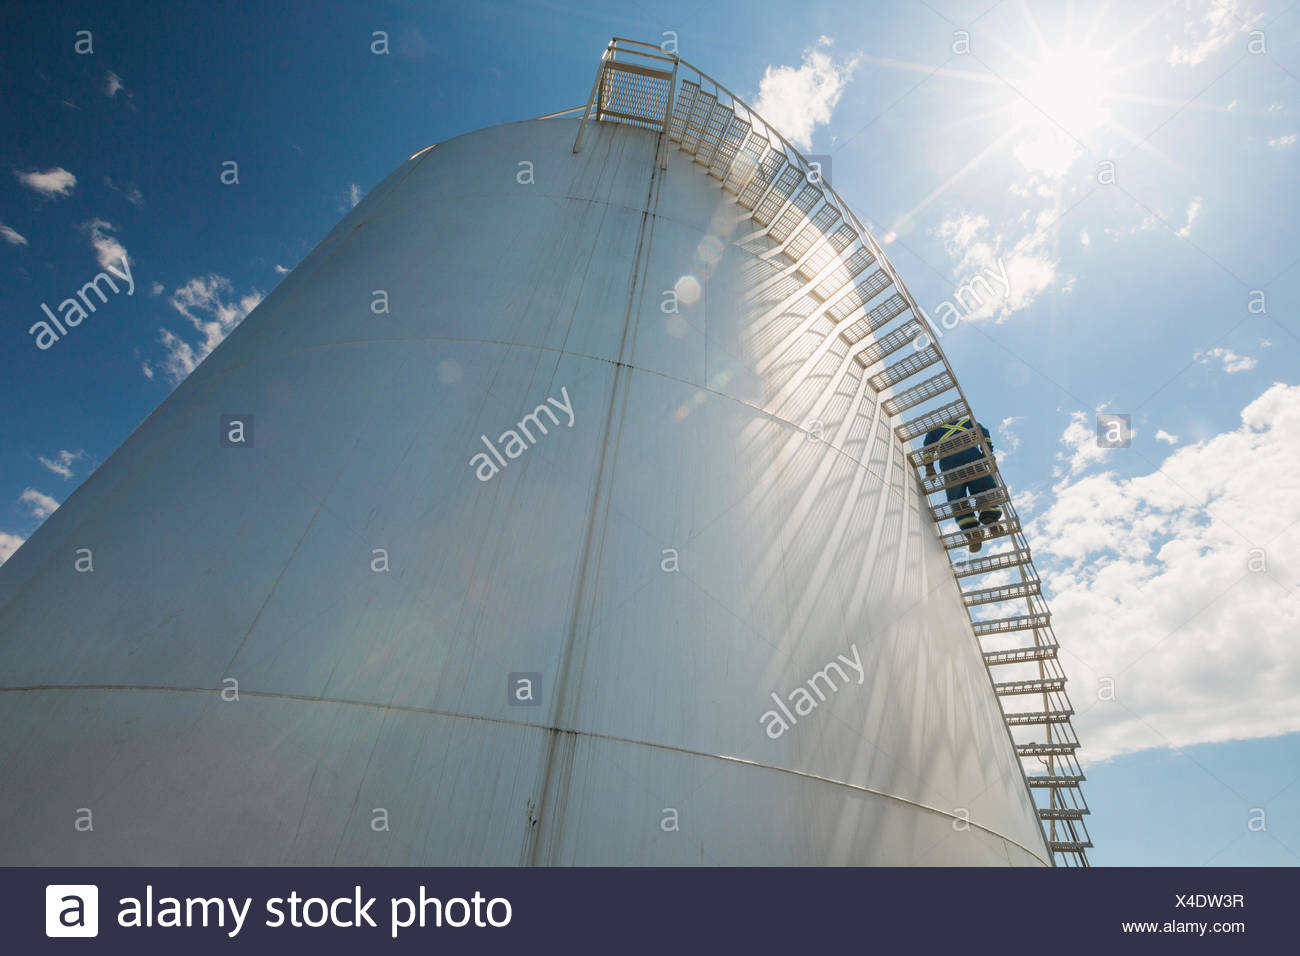 Worker descending spiral stairs of gas tower - Stock Image